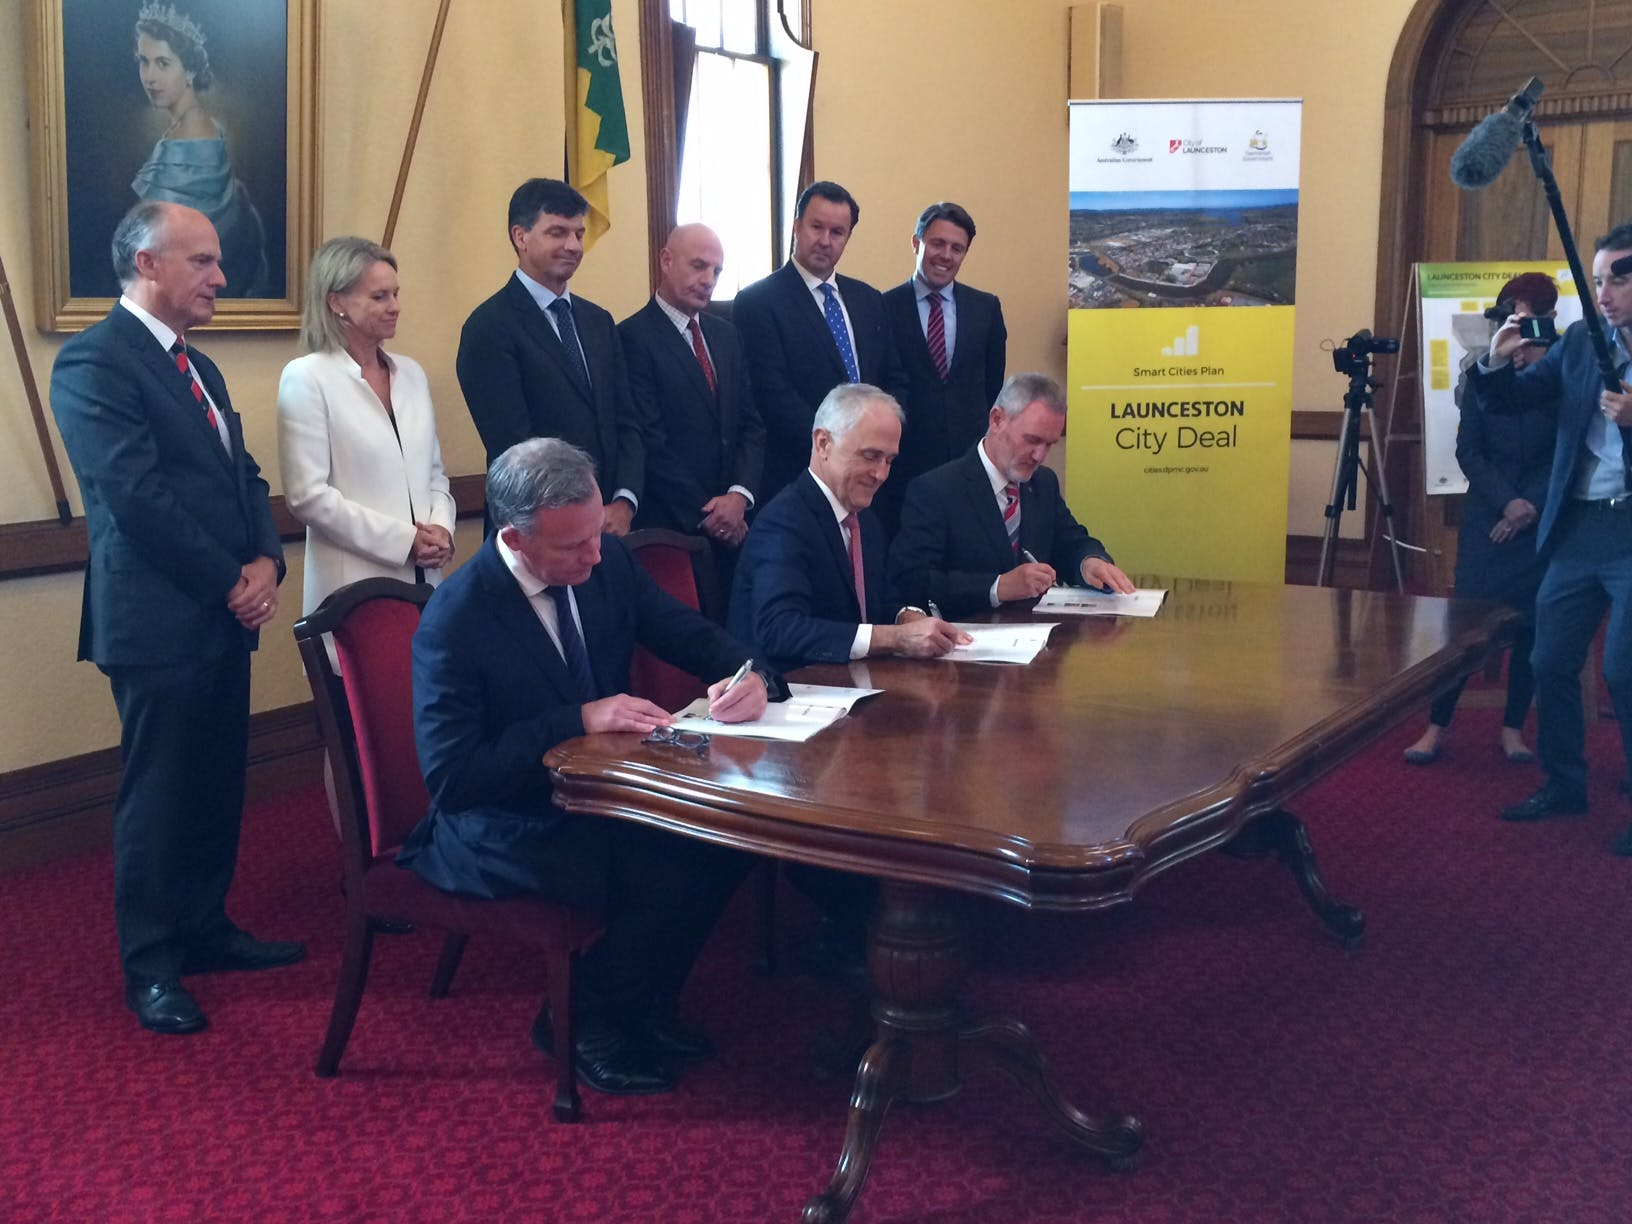 Leaders Signing The City Deal